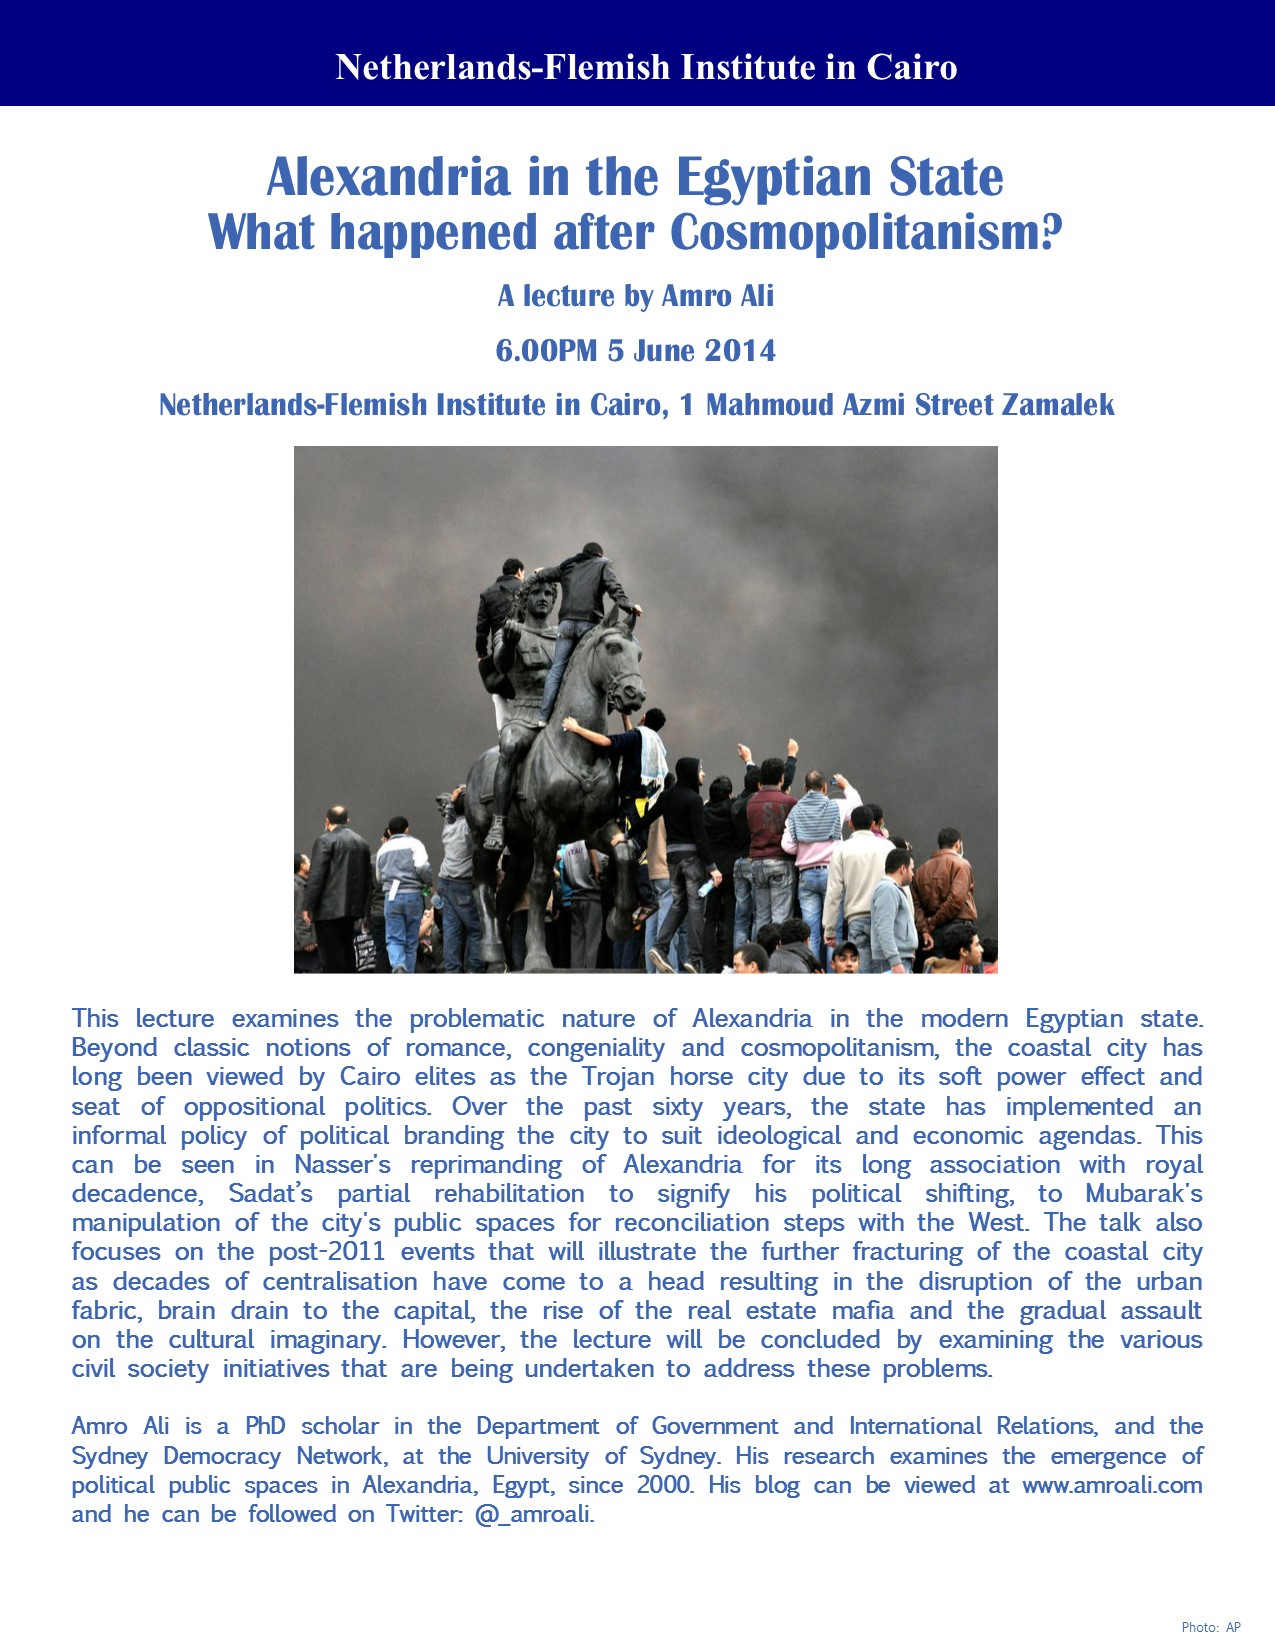 (Lecture) Alexandria in the Egyptian State: What happened after cosmopolitanism?